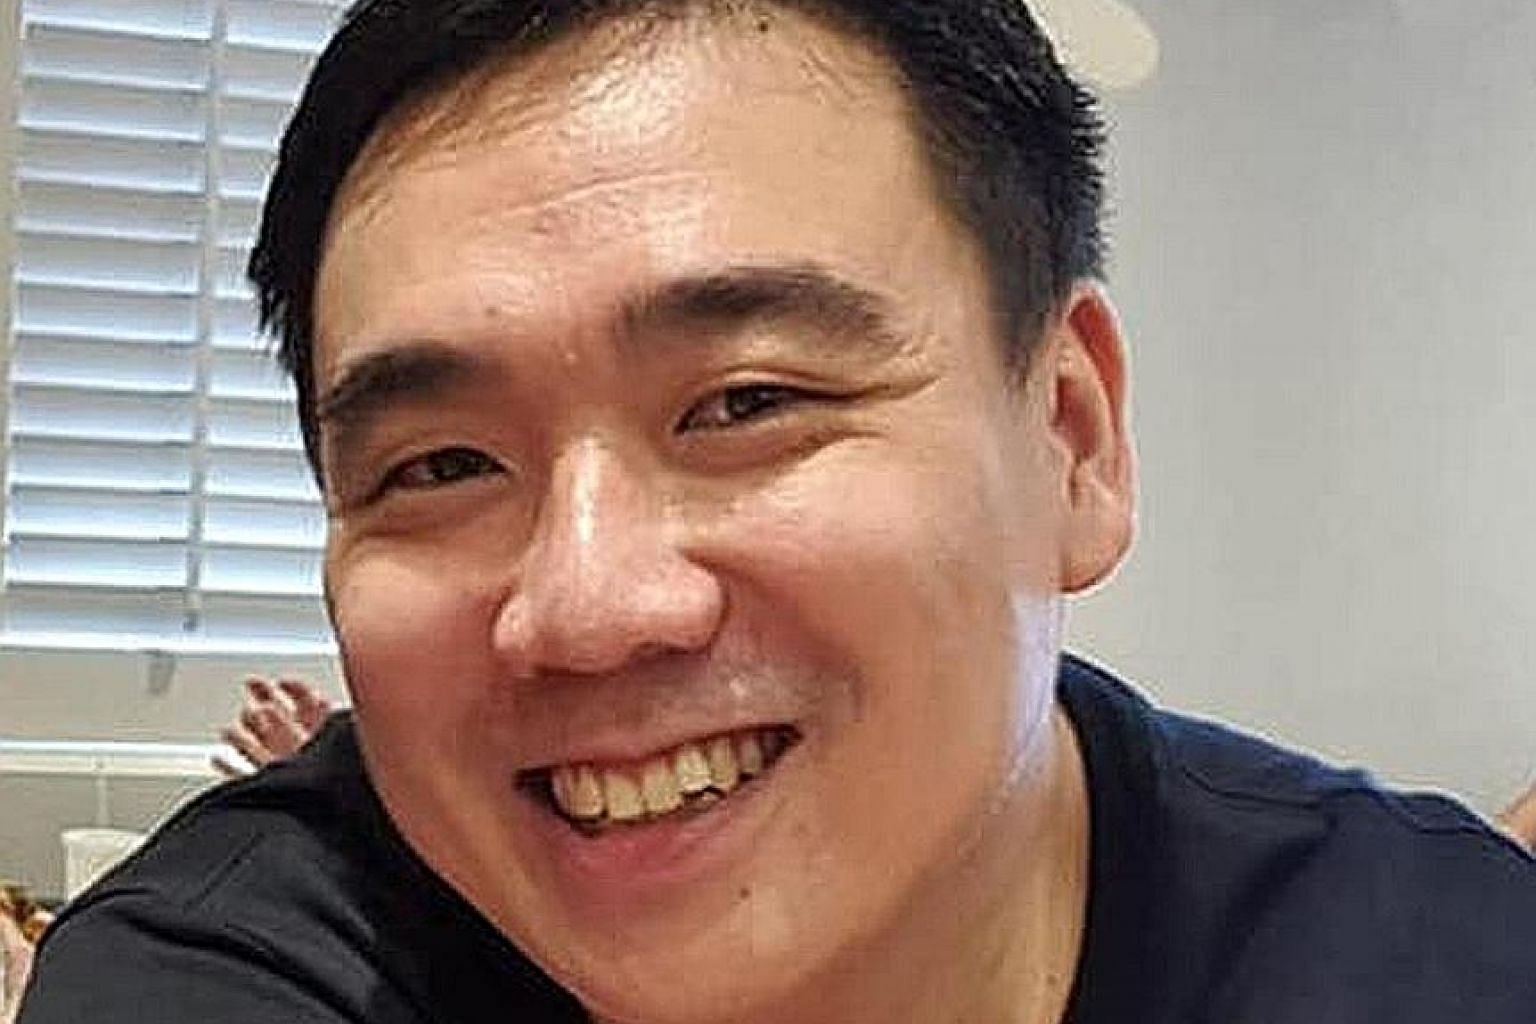 Mr Tay Rui Hao was working as an area manager at a retail store. The 38-year-old was jogging when he was stabbed near a bus stop in Punggol Field last Sunday. A resident heard his cries for help. PHOTO: TAY RUI HAO/FACEBOOK